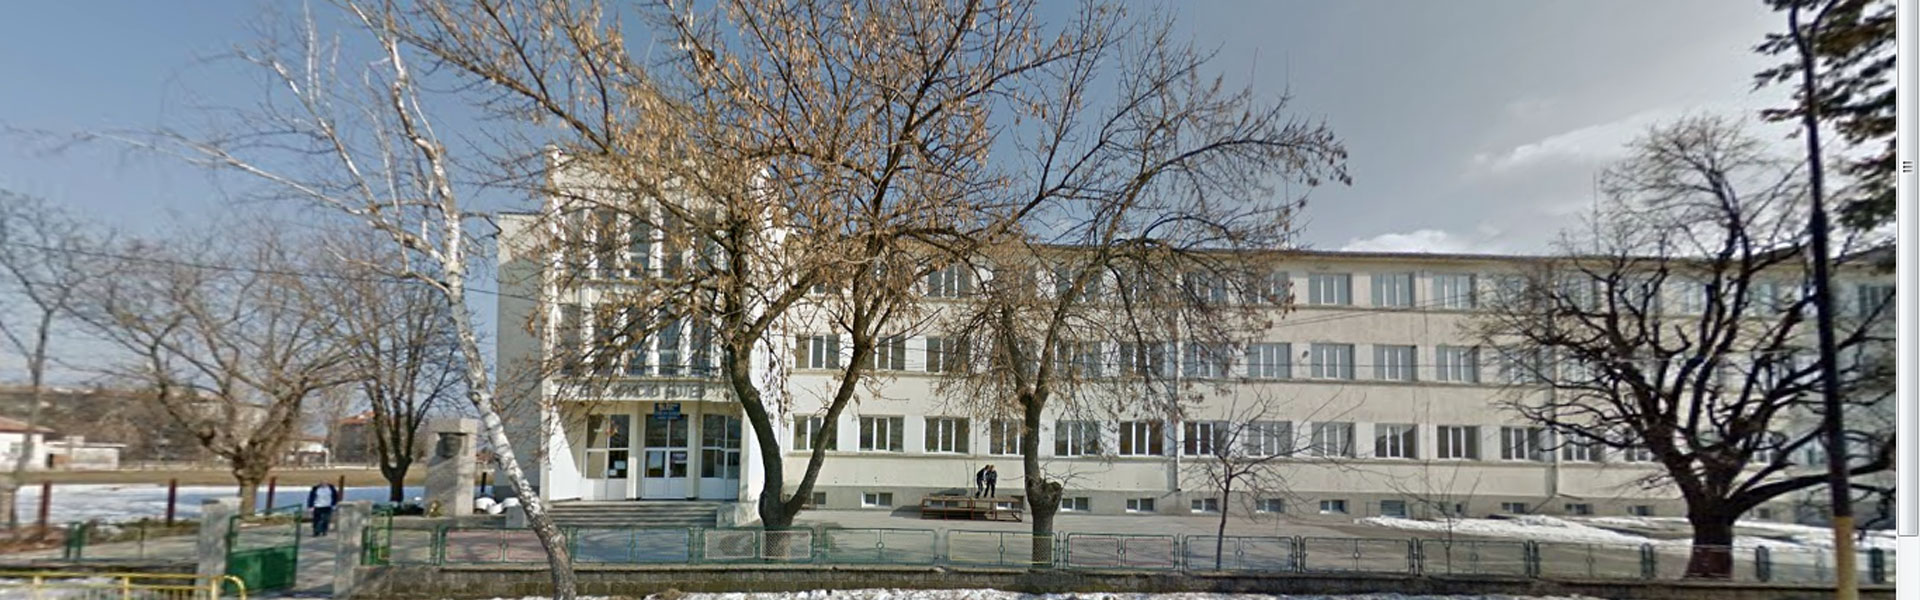 """Hristo Botev"" Secondary School - Tutrakan"